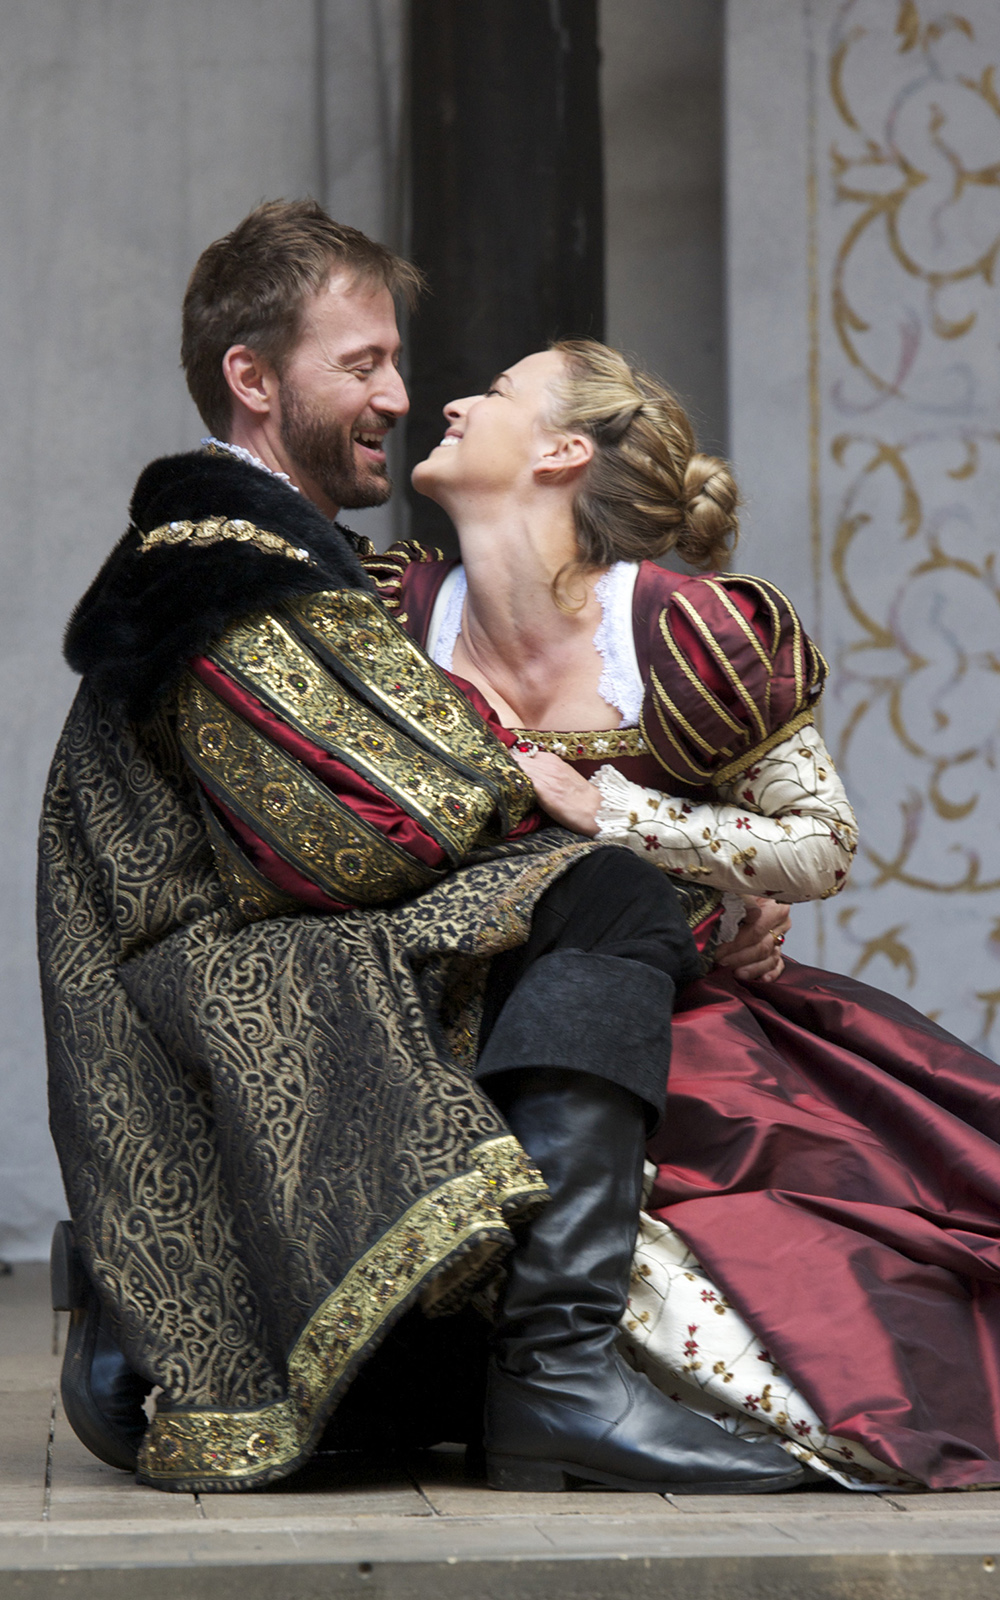 Couple - Henry VIII and Anne